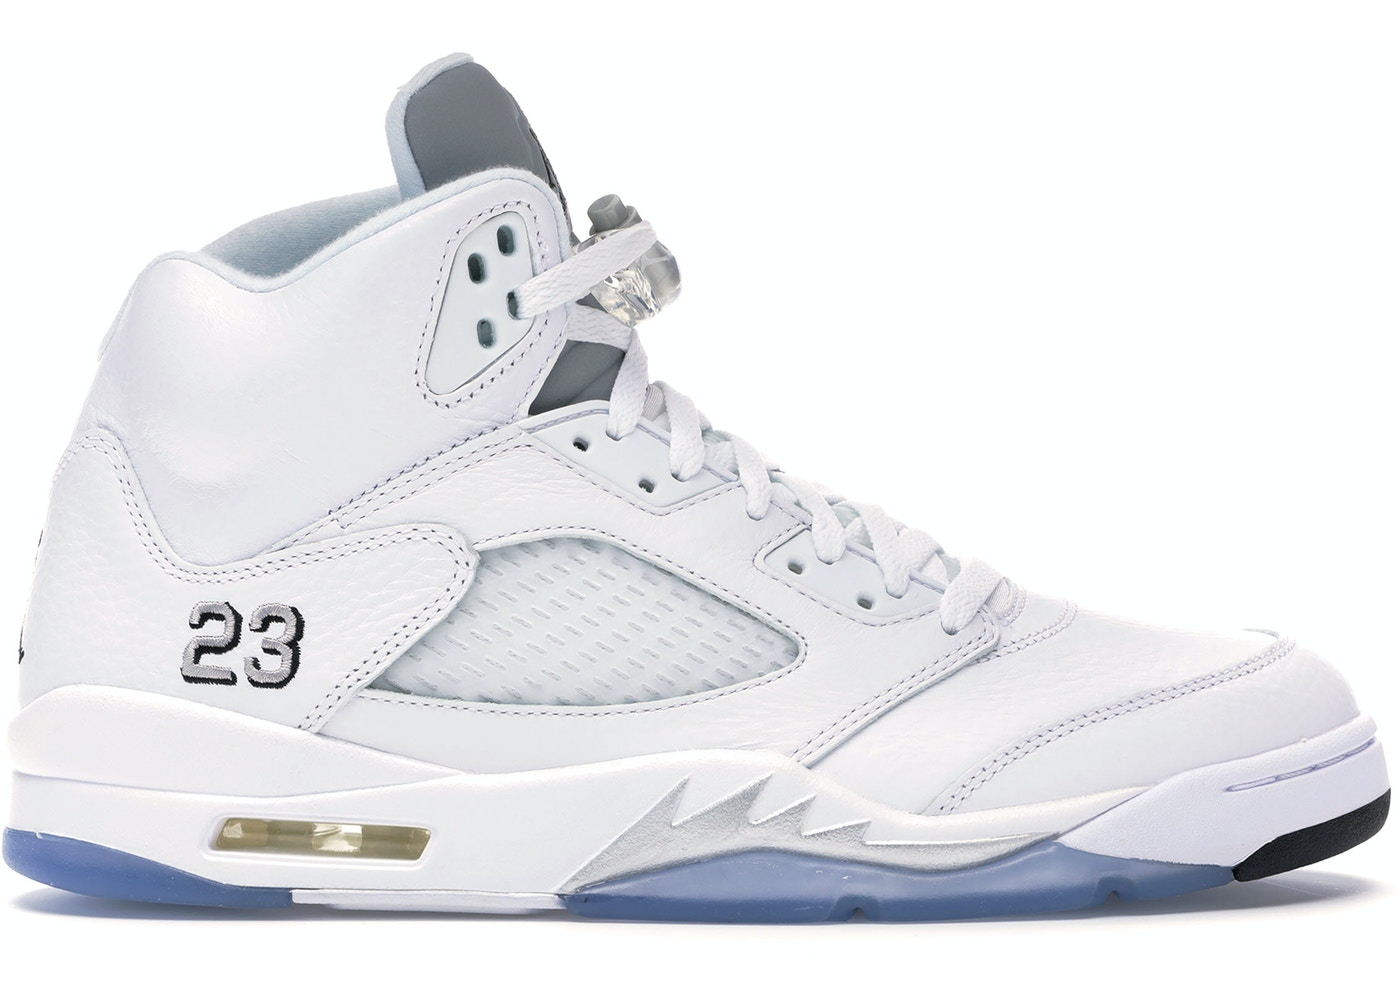 sports shoes 8725e 69ccb Jordan 5 Retro Metallic White (2015)